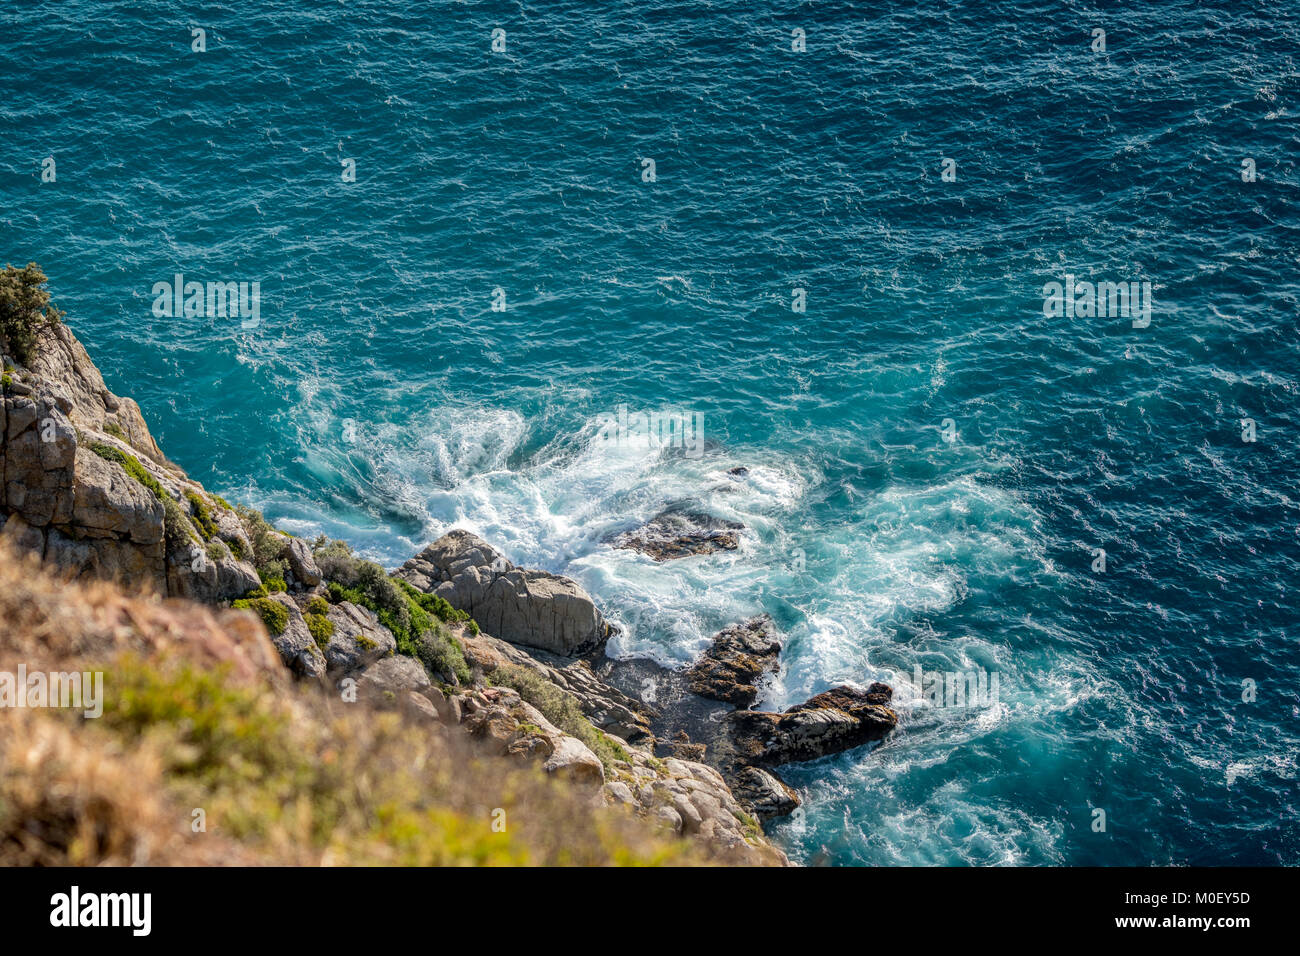 Waves crashing at Cape Point, Cape Town, Western Cape, South Africa - Stock Image